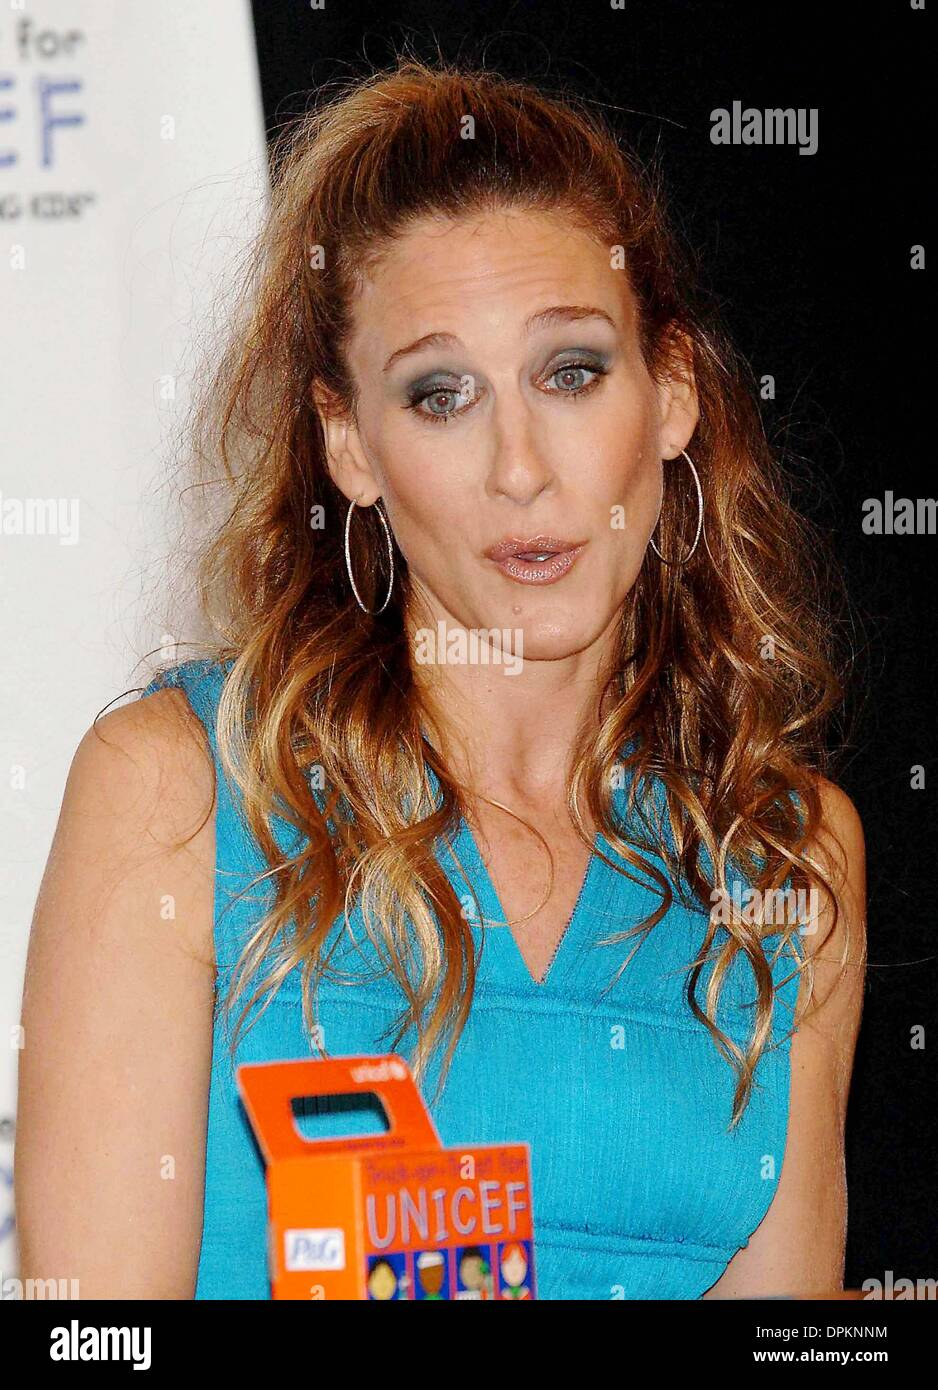 oct 25 2006 new york new york usa sarah jessica parker promotes unicef halloween boxes at un headquarters in nyc on october 25 2006